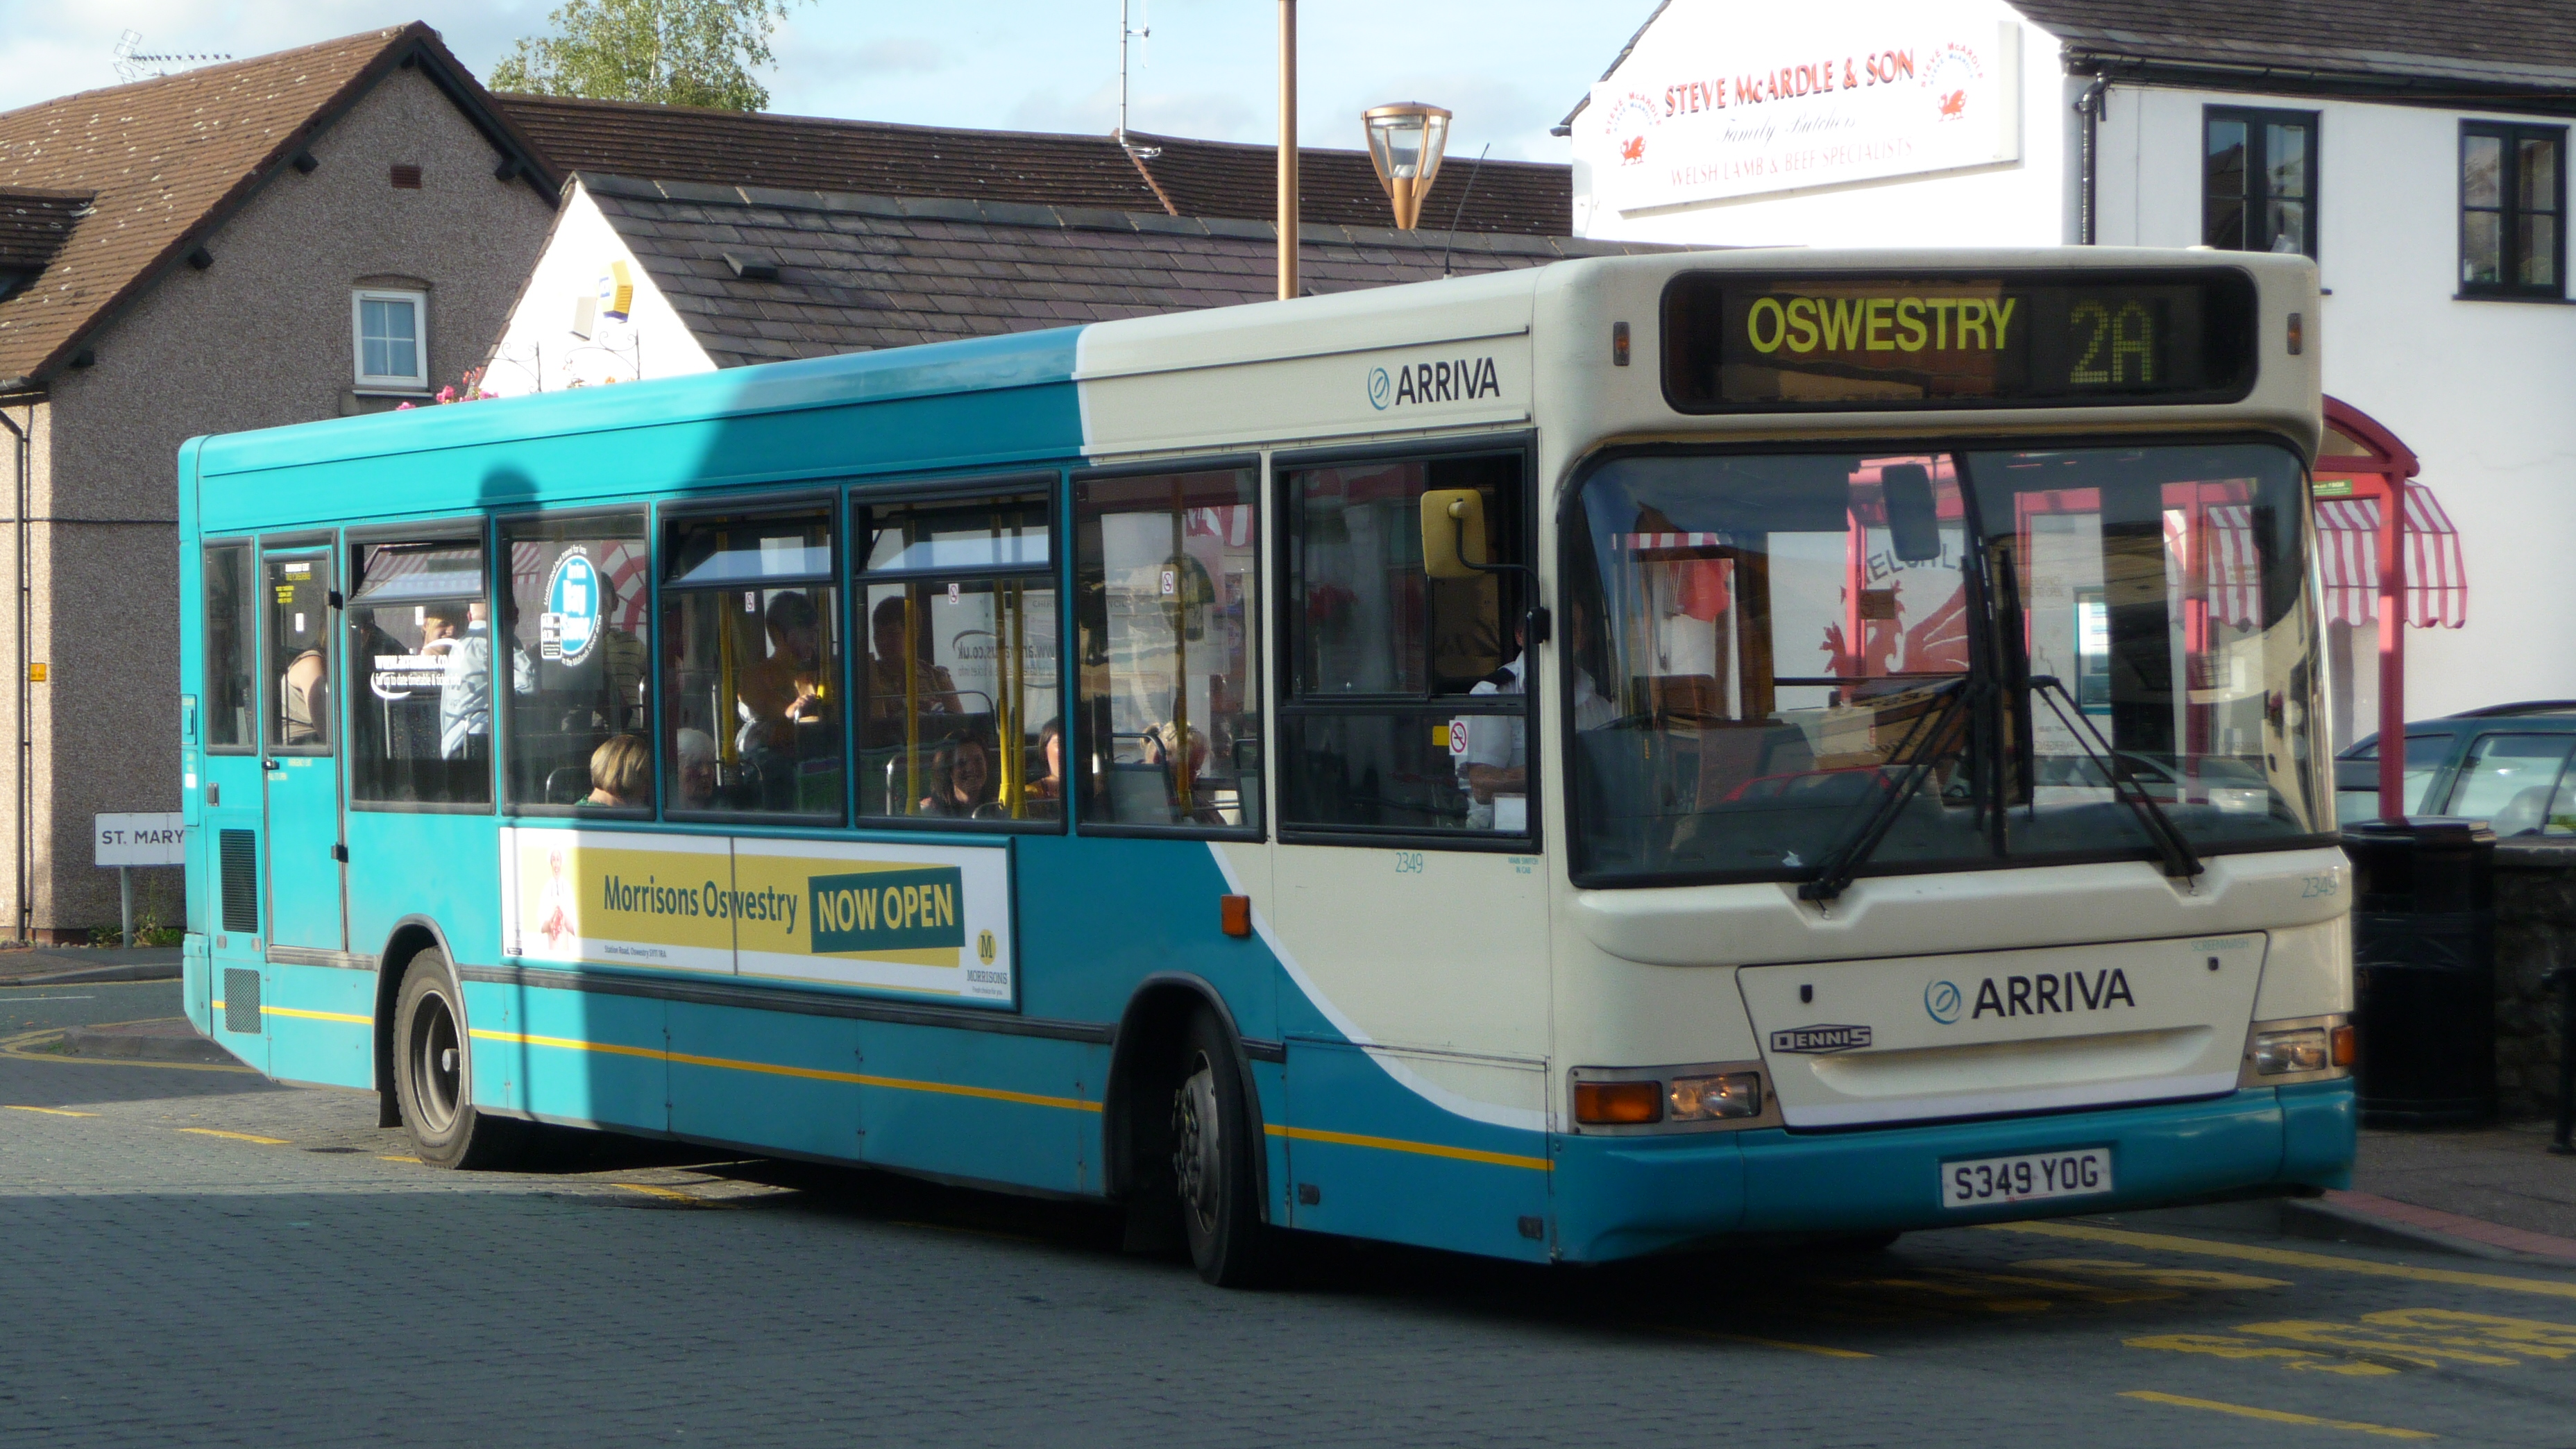 File:Arriva Midlands North 2349 S349 YOG.JPG